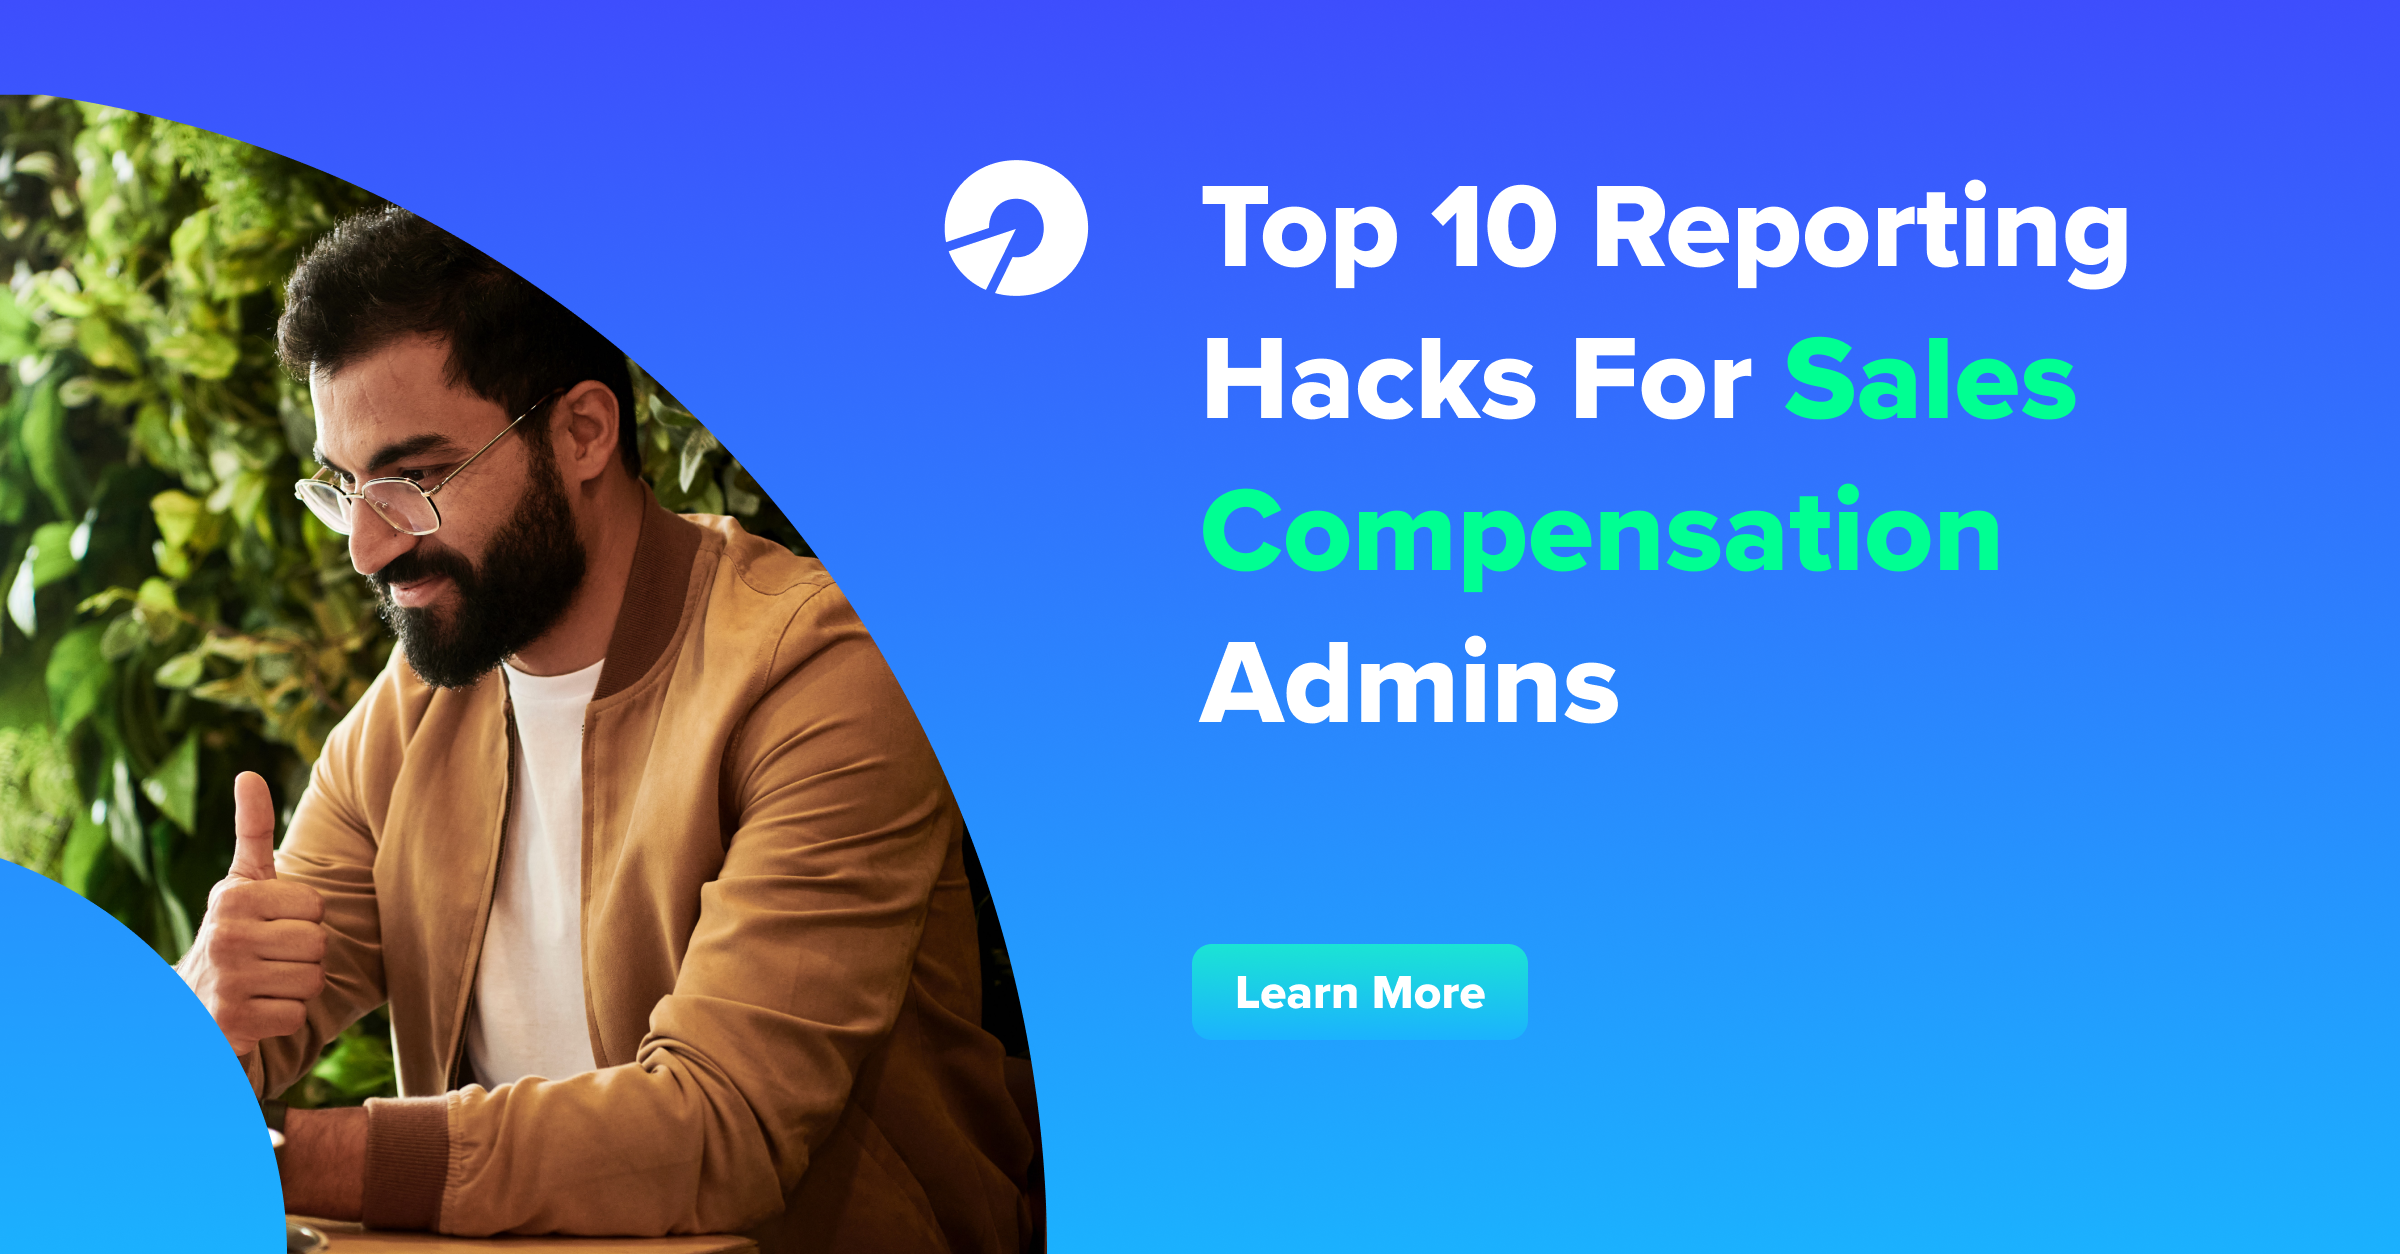 Top 10 Reporting Hacks For Sales Compensation Admins